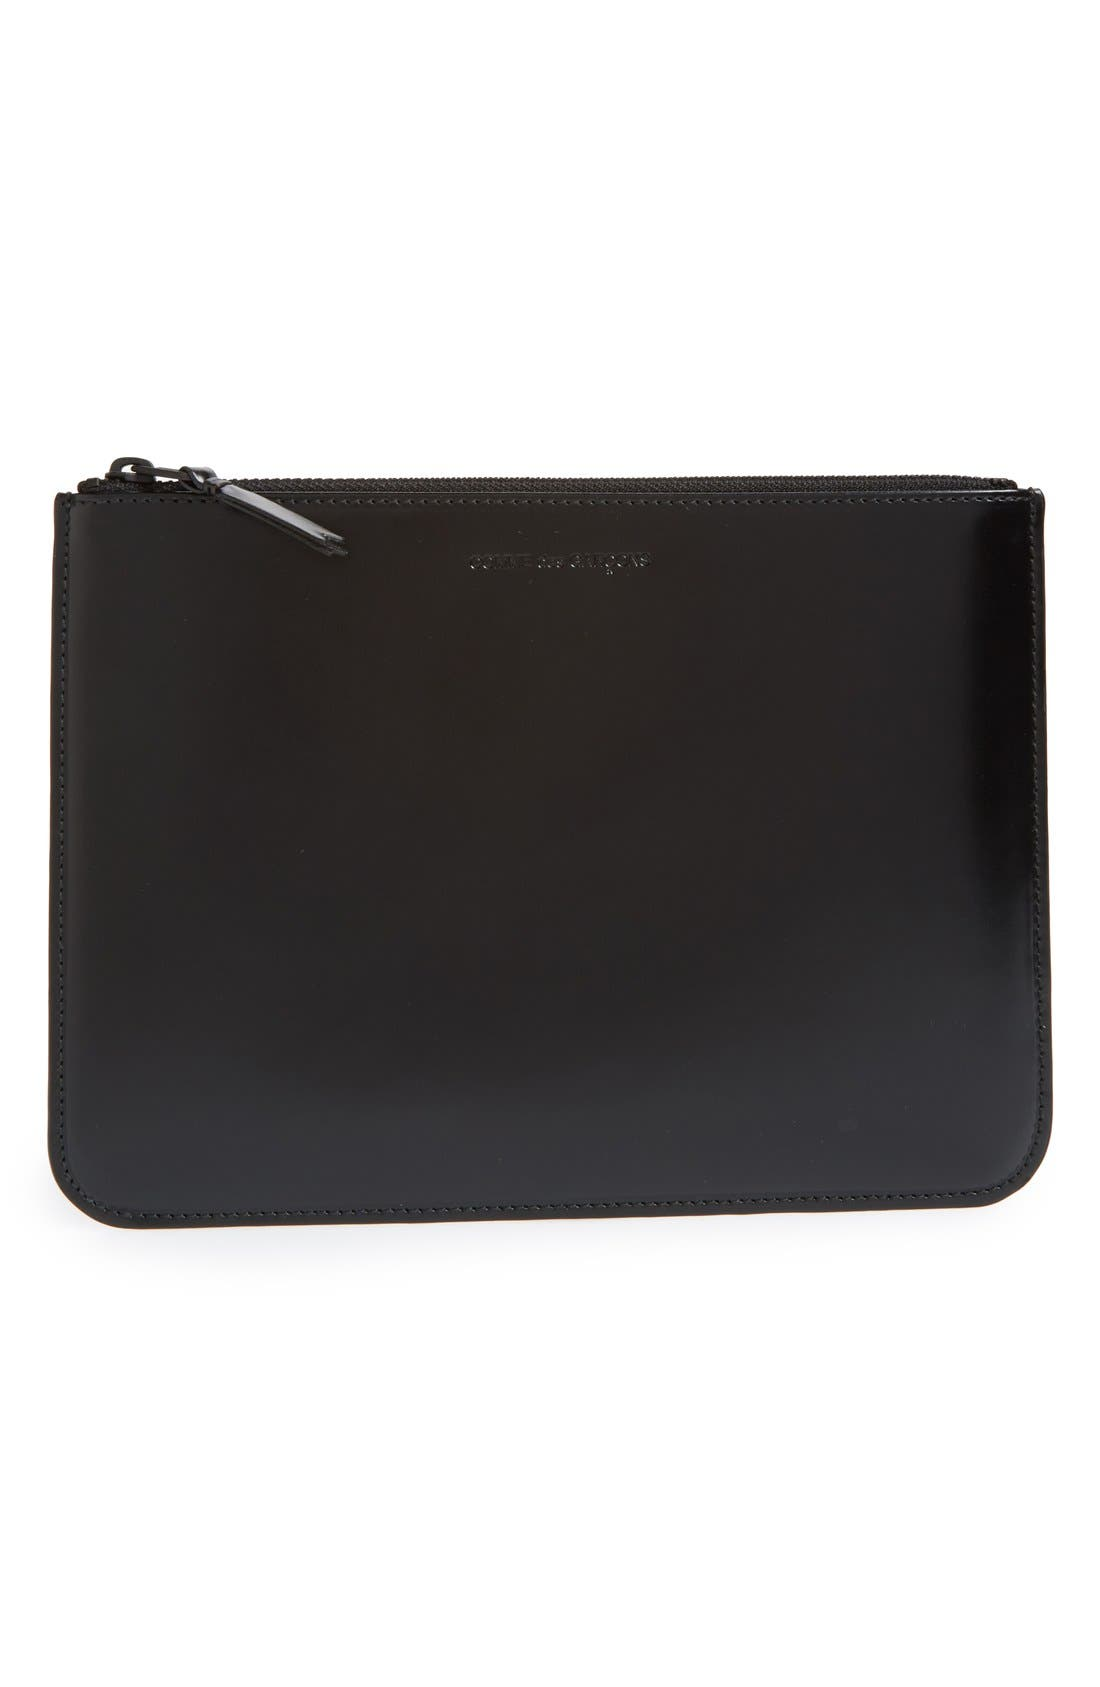 Alternate Image 1 Selected - Comme des Garçons Top Zip Pouch Wallet